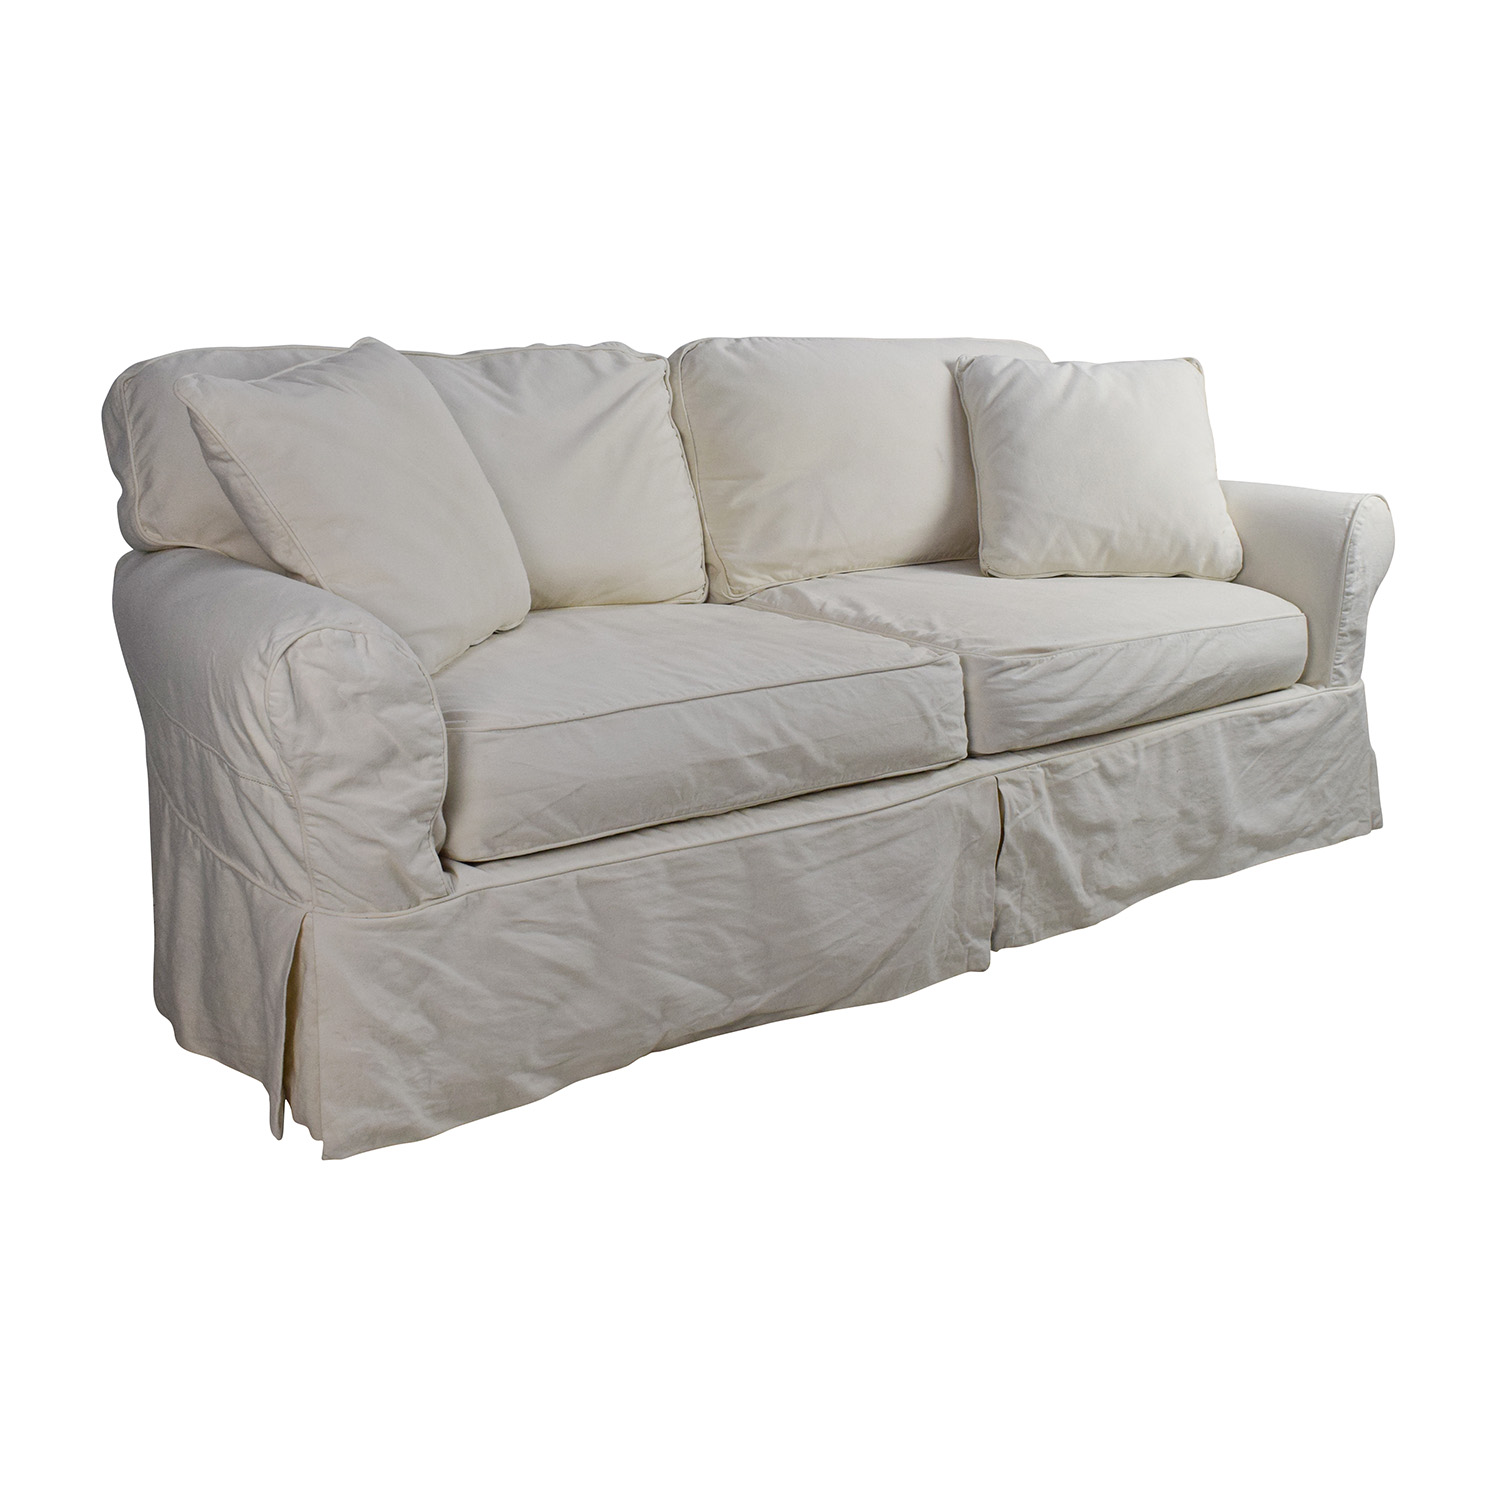 Raymour And Flanigan Couches Sectional Sofas Raymour And